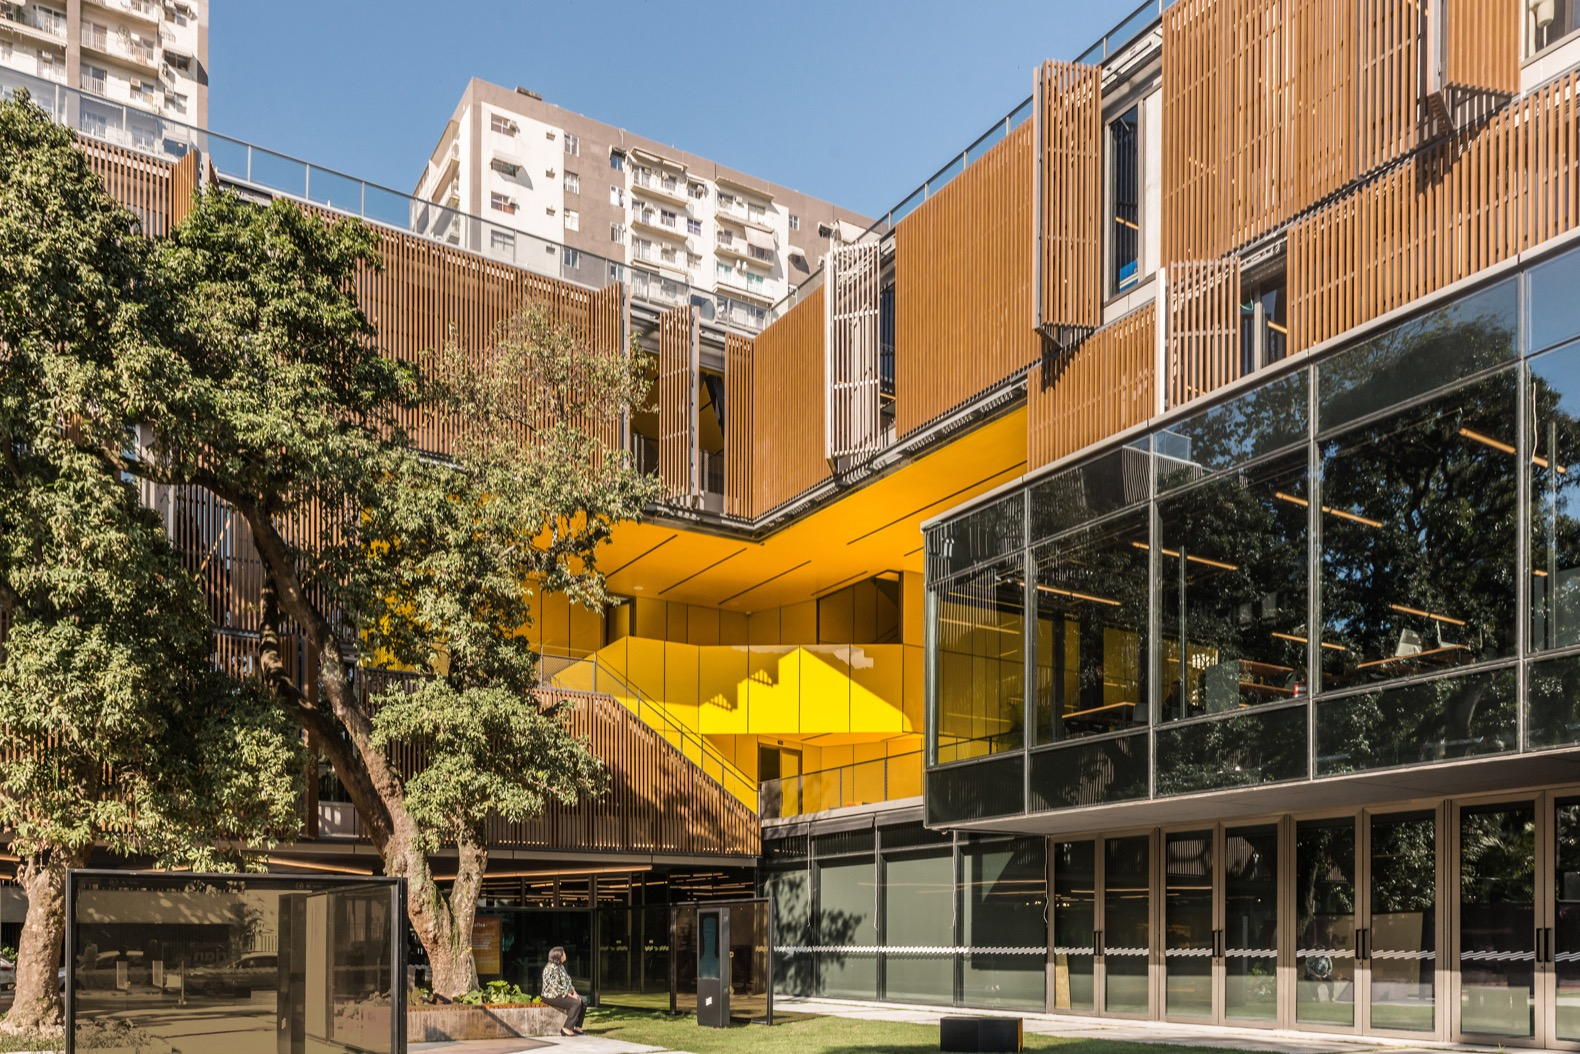 Award-winning innovation center harnesses recycled rainwater and solar energy